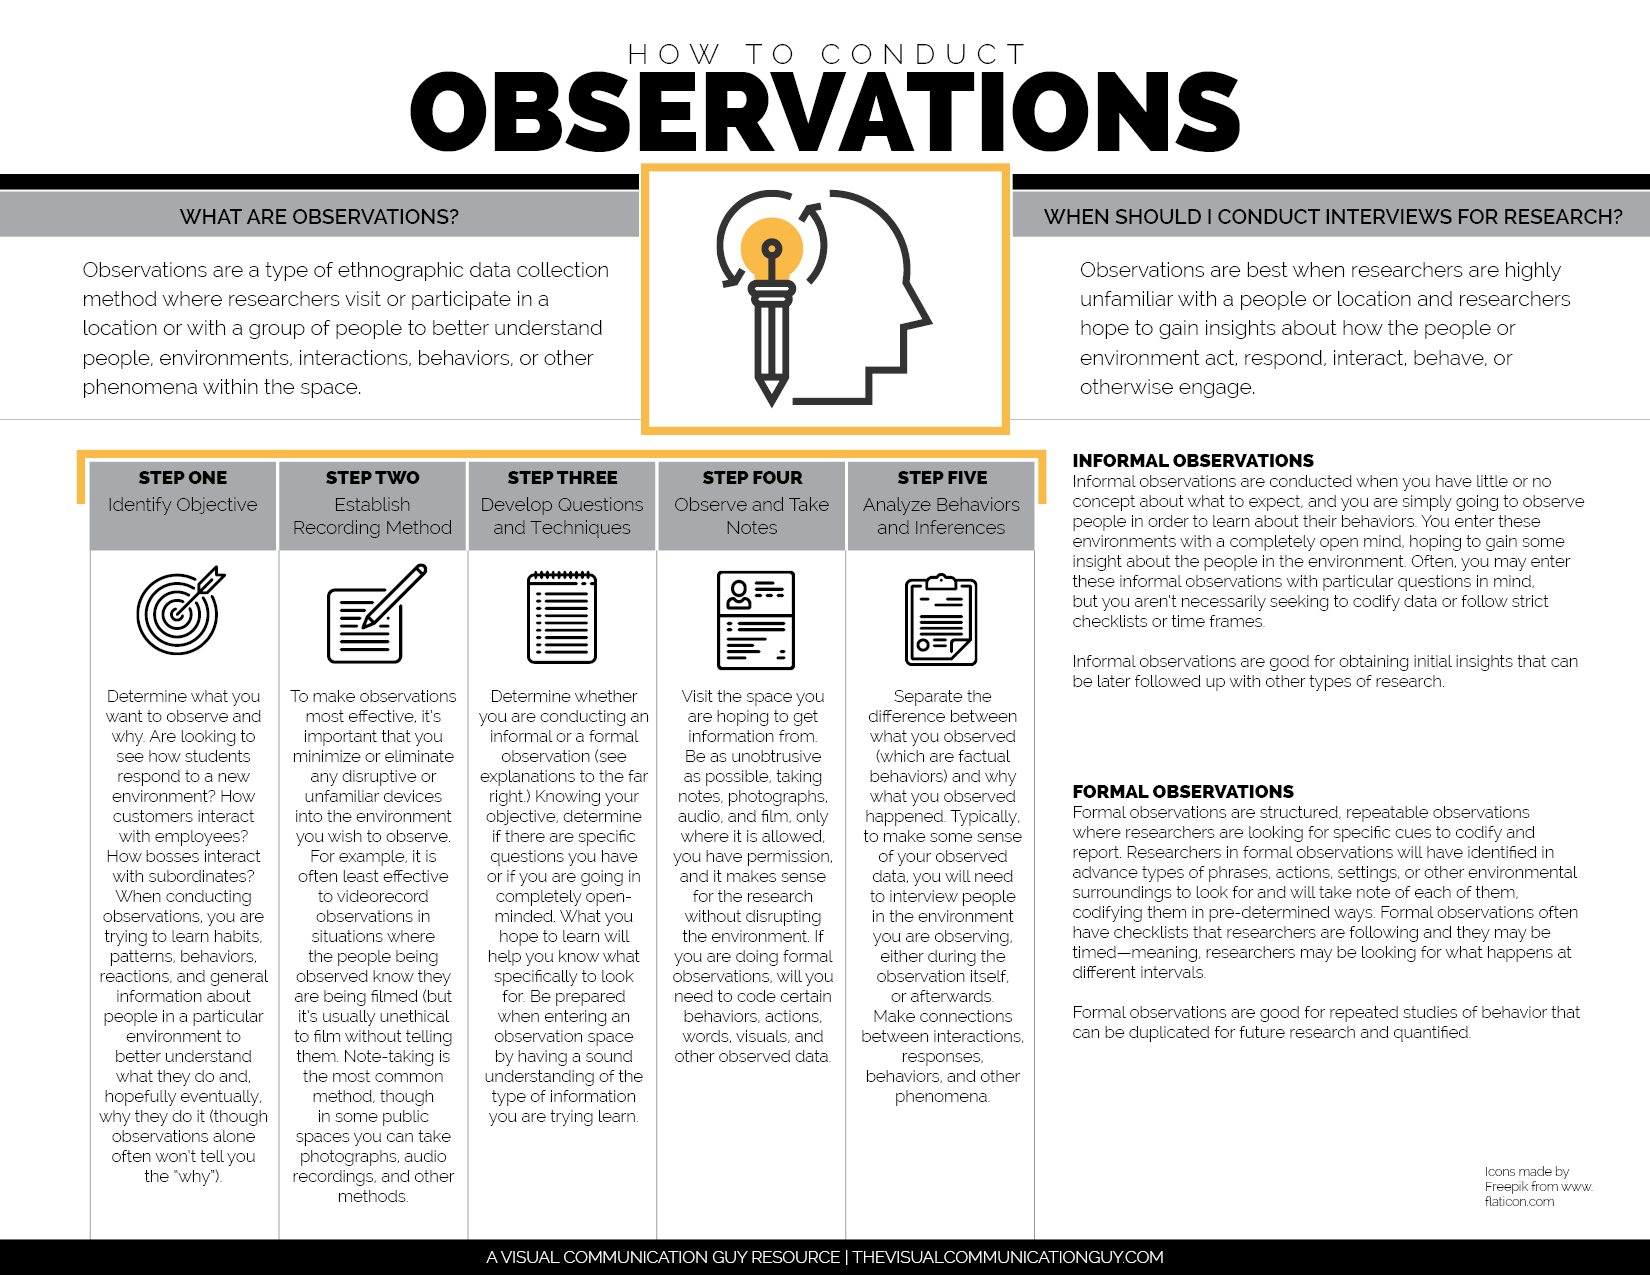 How To Conduct Observations For Research The Visual Communication Guy